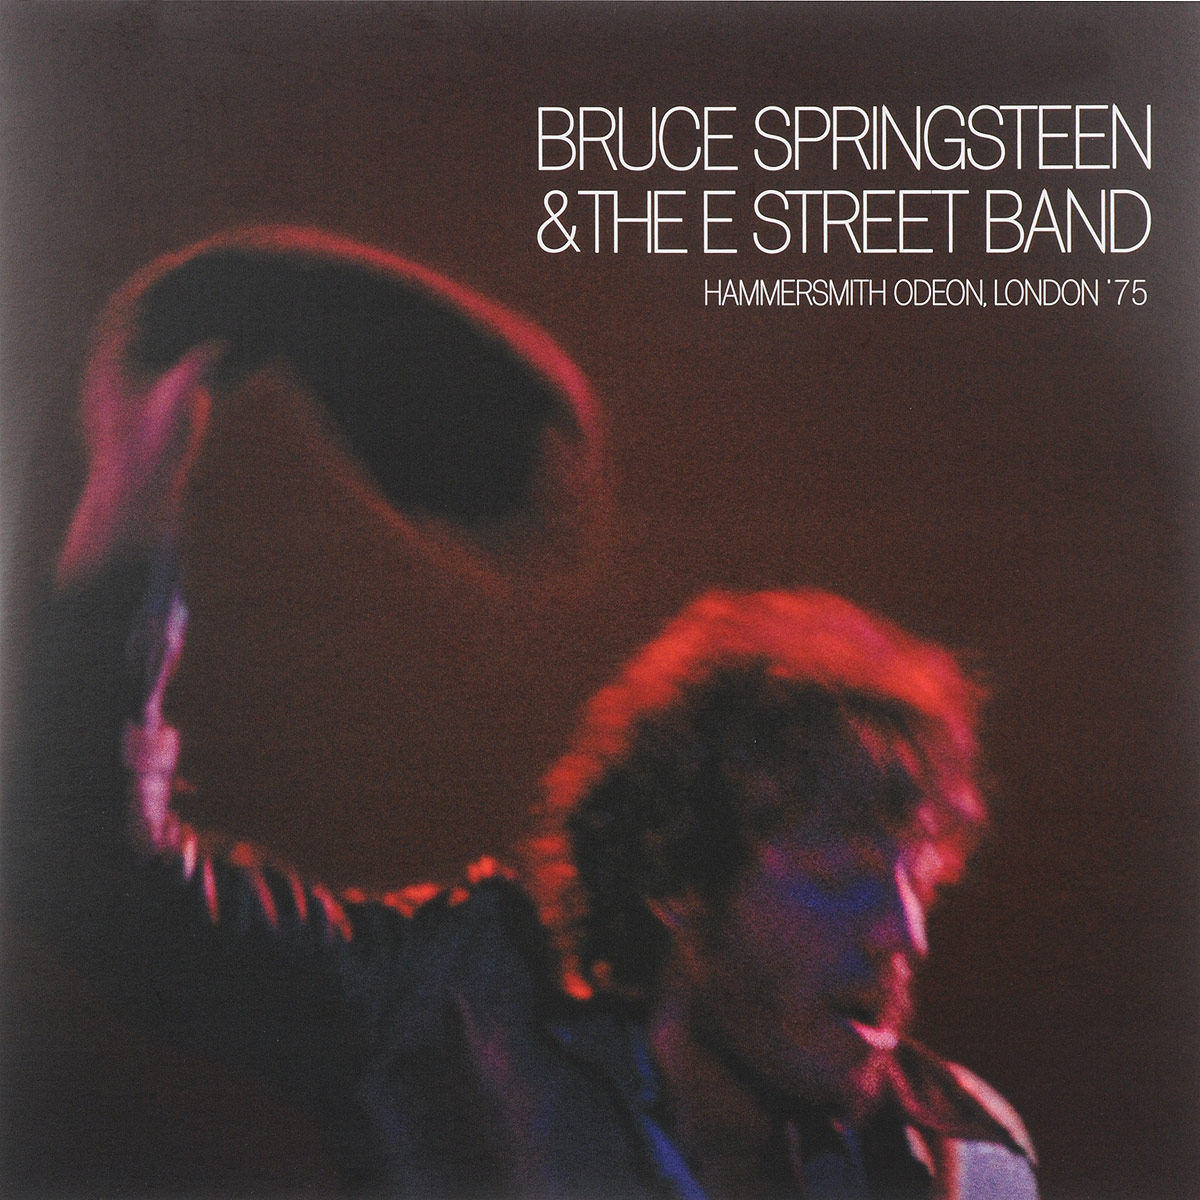 Брюс Спрингстин,The E Street Band Bruce Springsteen & The E Street Band. Hammersmith Odeon, London '75 (4 LP) bruce springsteen live in dublin blu ray